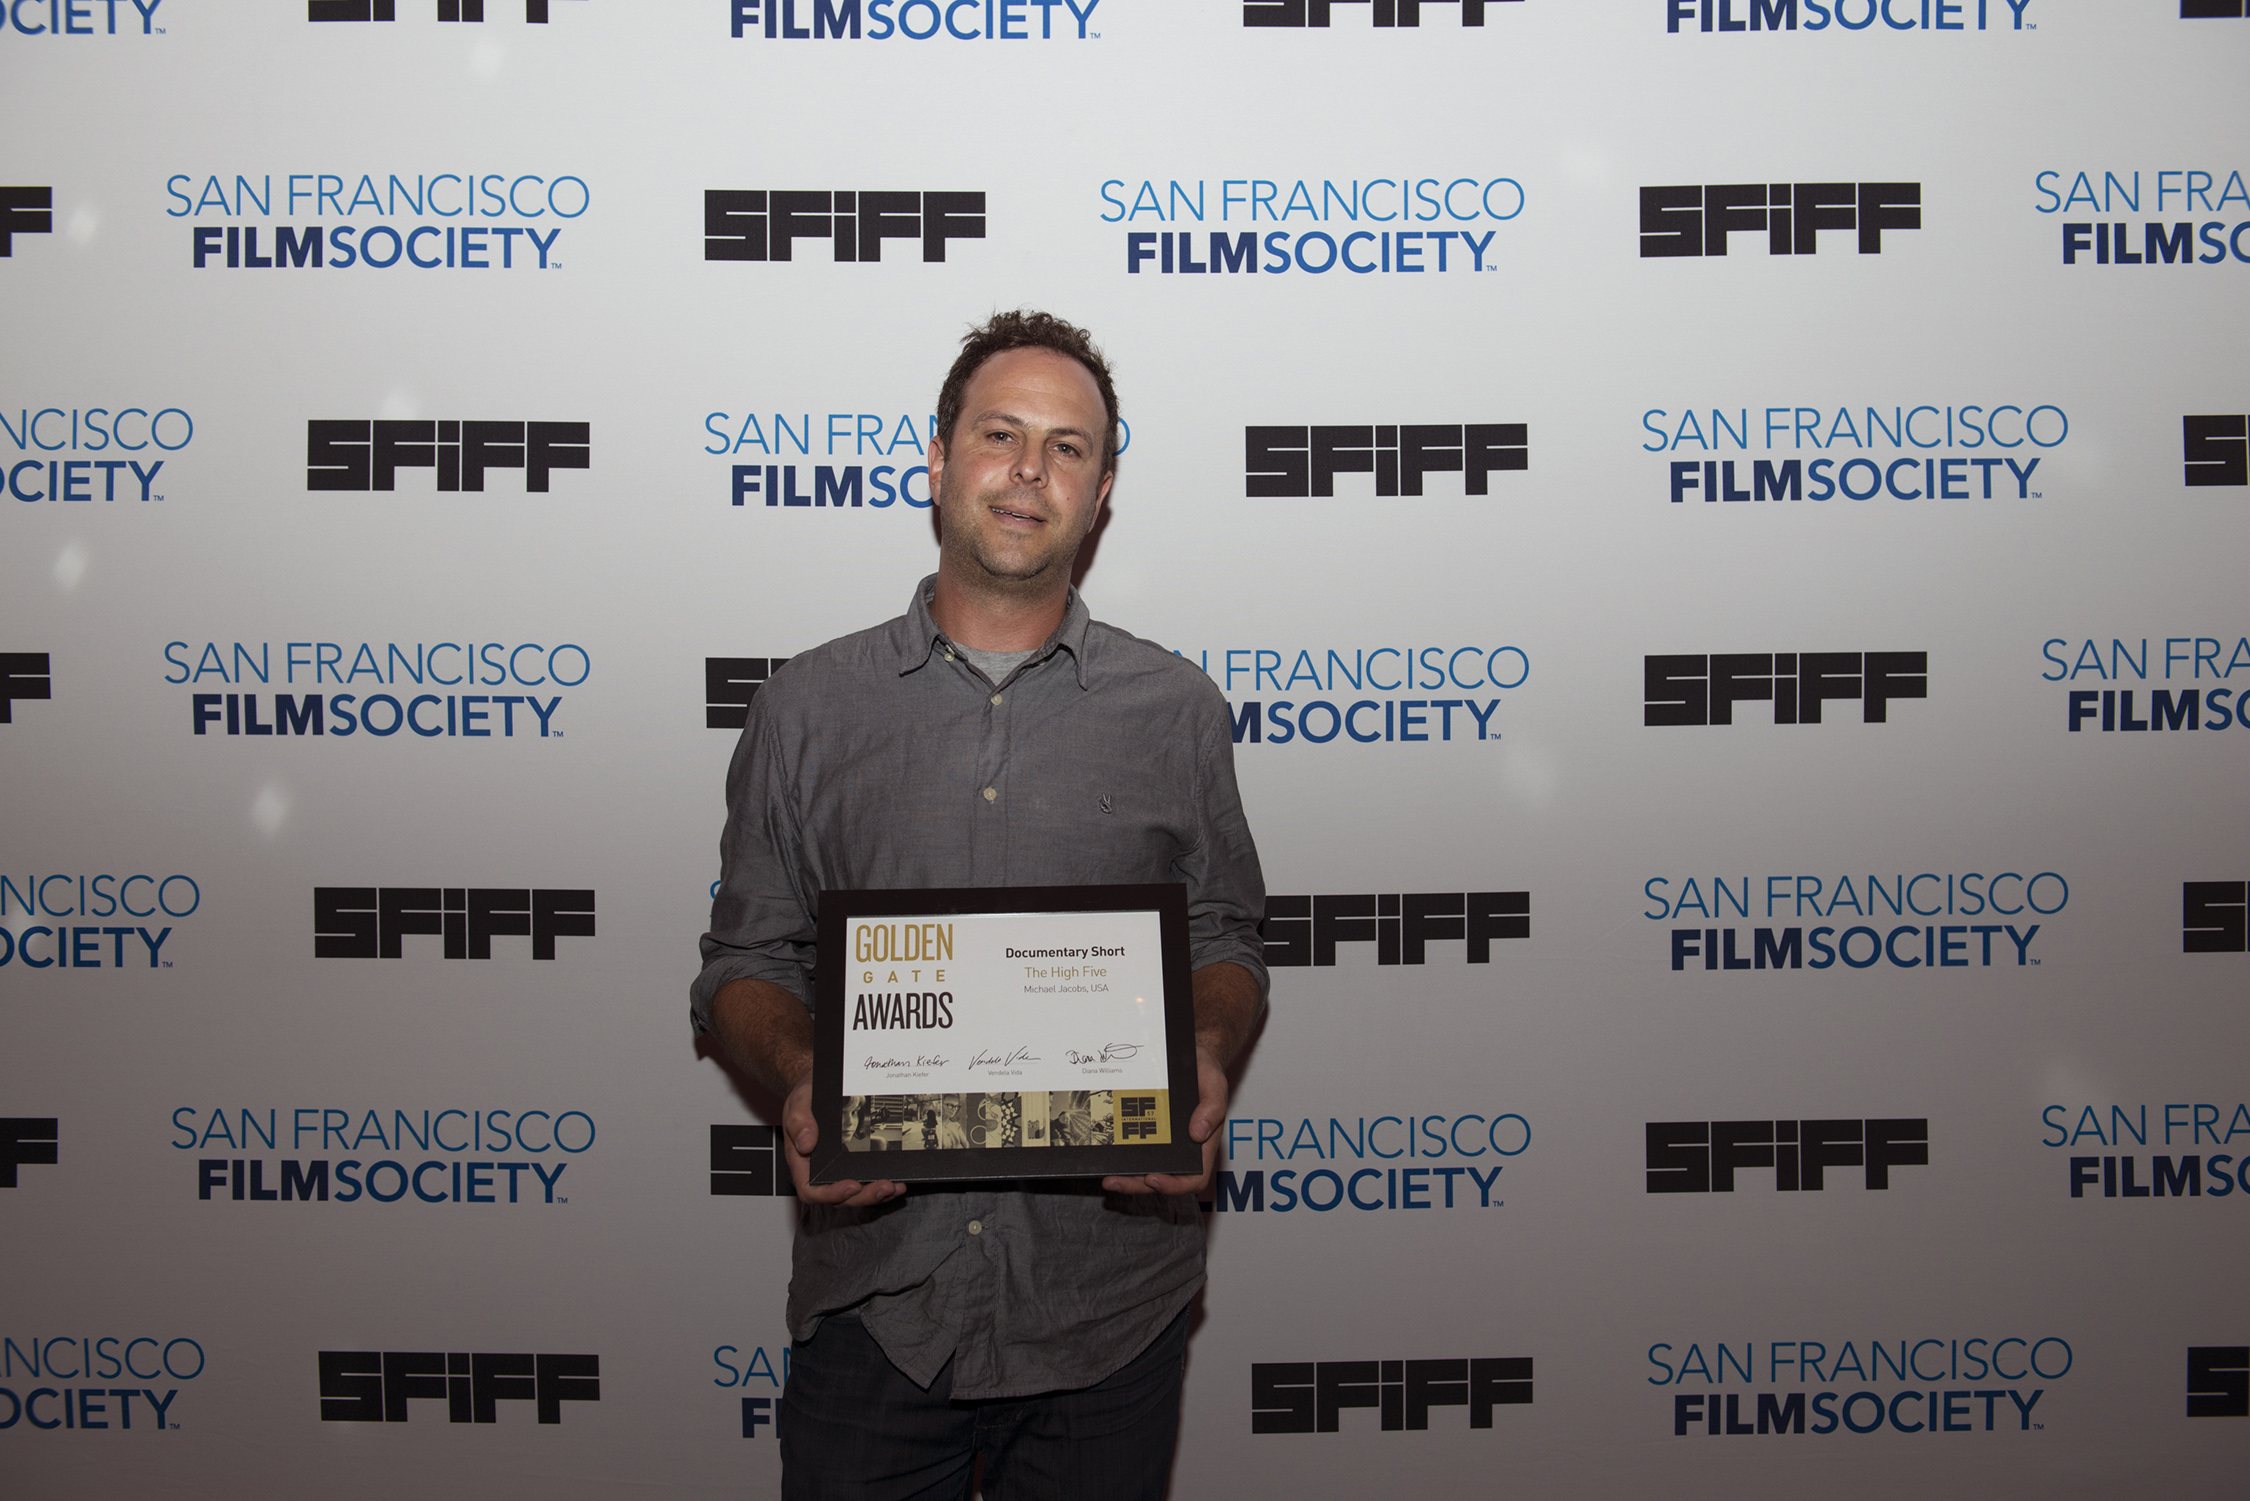 Michael Jacobs, director of THE HIGH FIVE